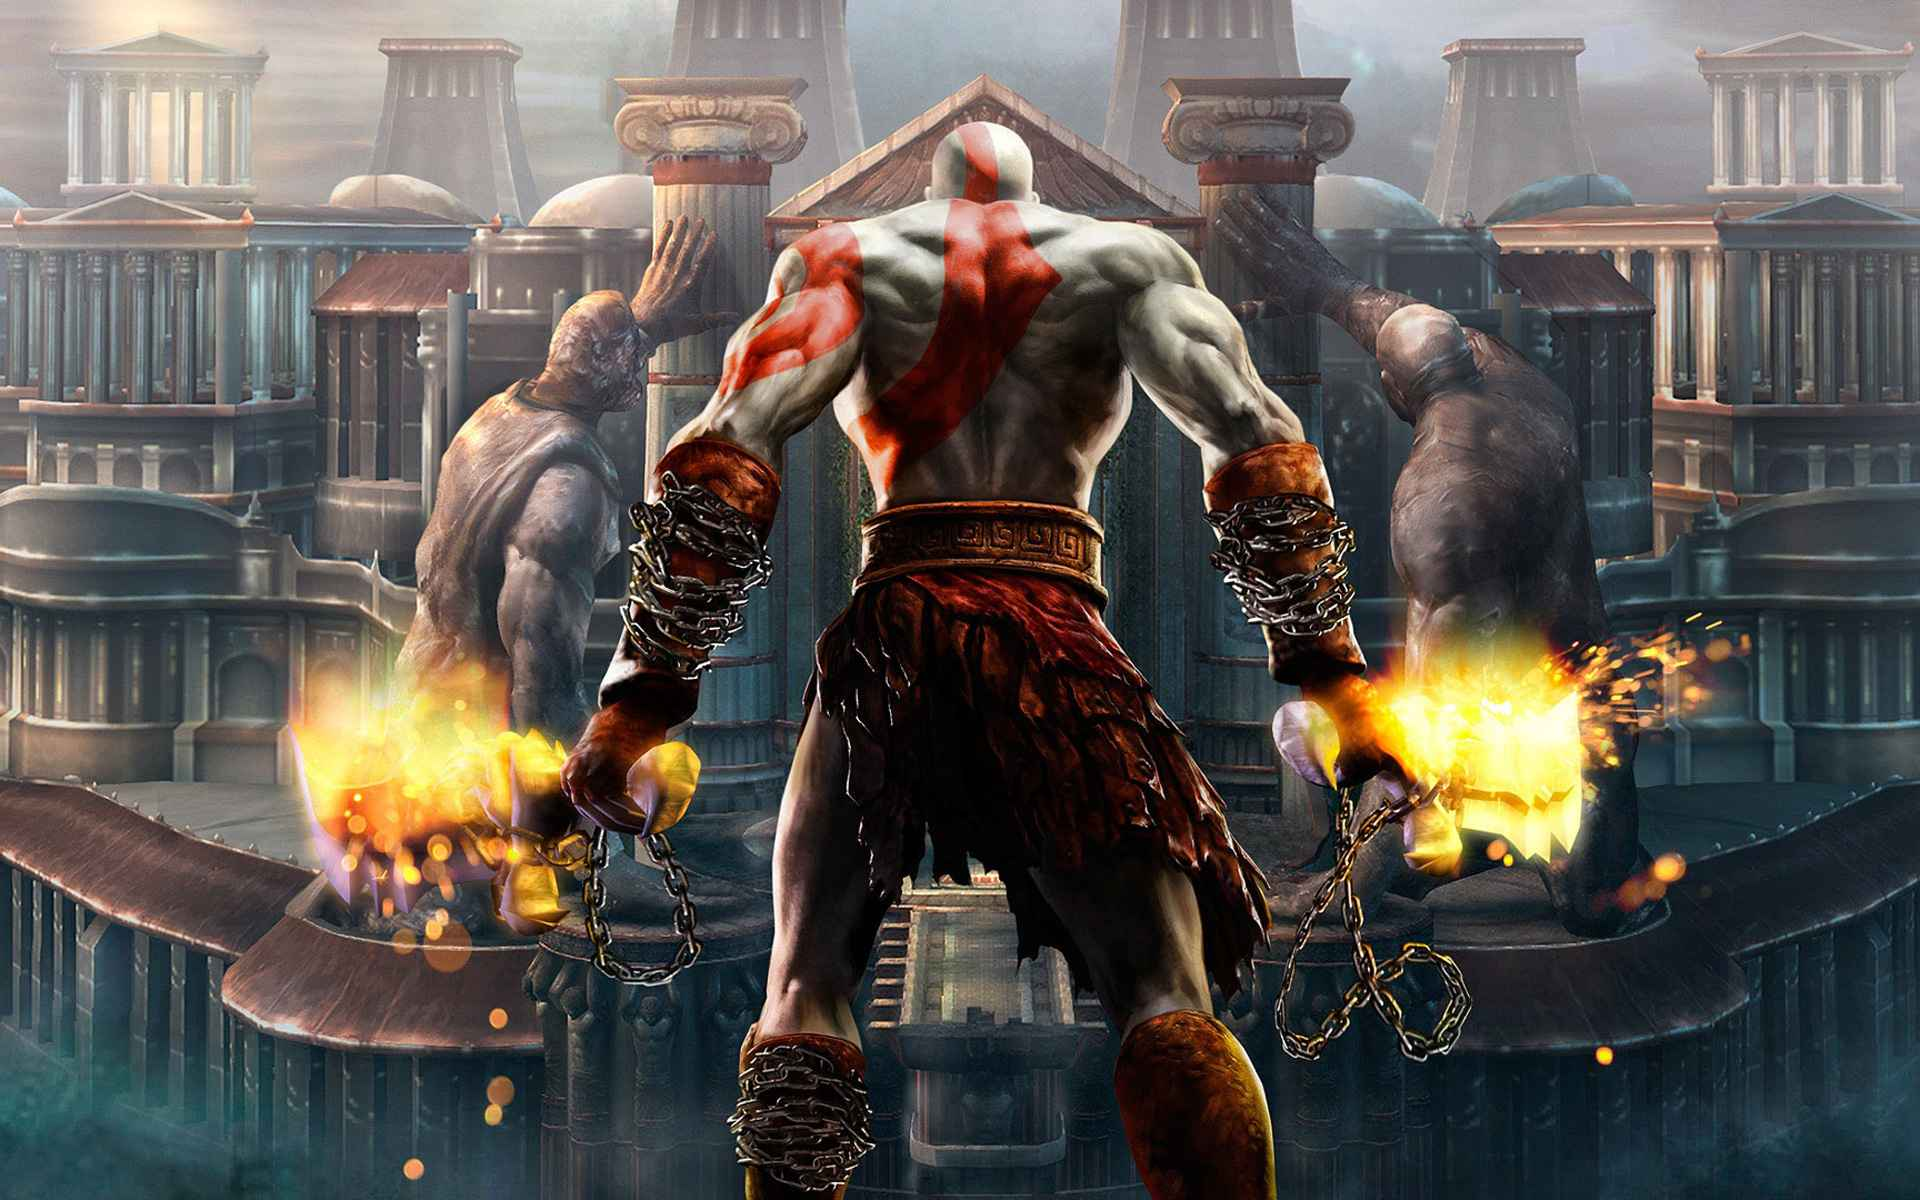 god of war wallpapers in hd, 4k for ps4 - playstation universe